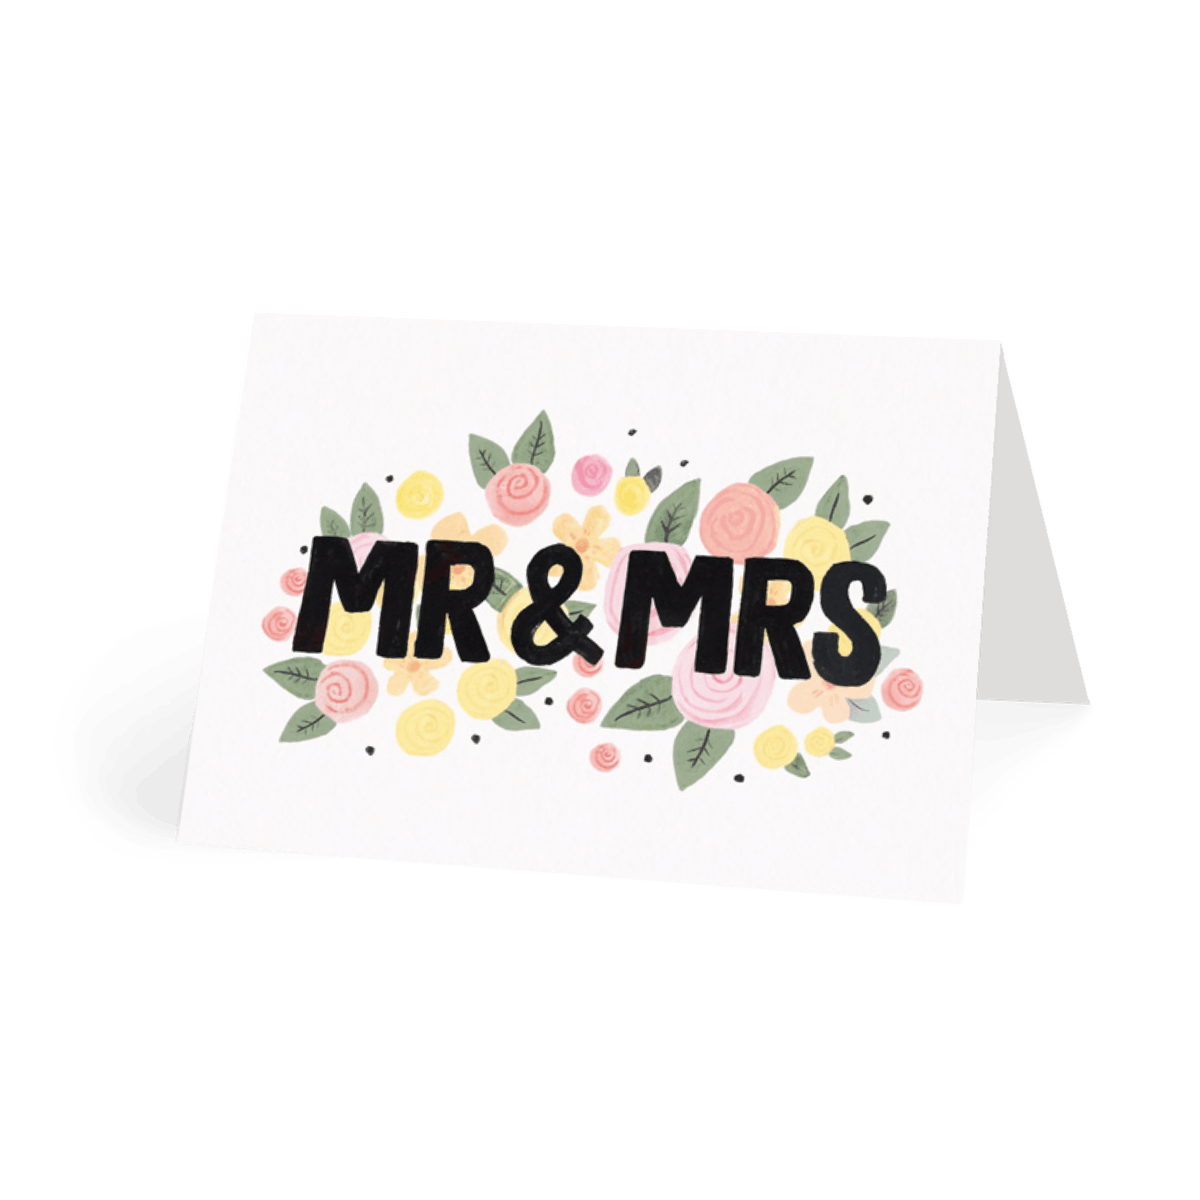 Https%3a%2f%2fwww.papier.com%2fproduct image%2f7713%2f14%2fmr mrs floral 1902 front 1464860762.png?ixlib=rb 1.1